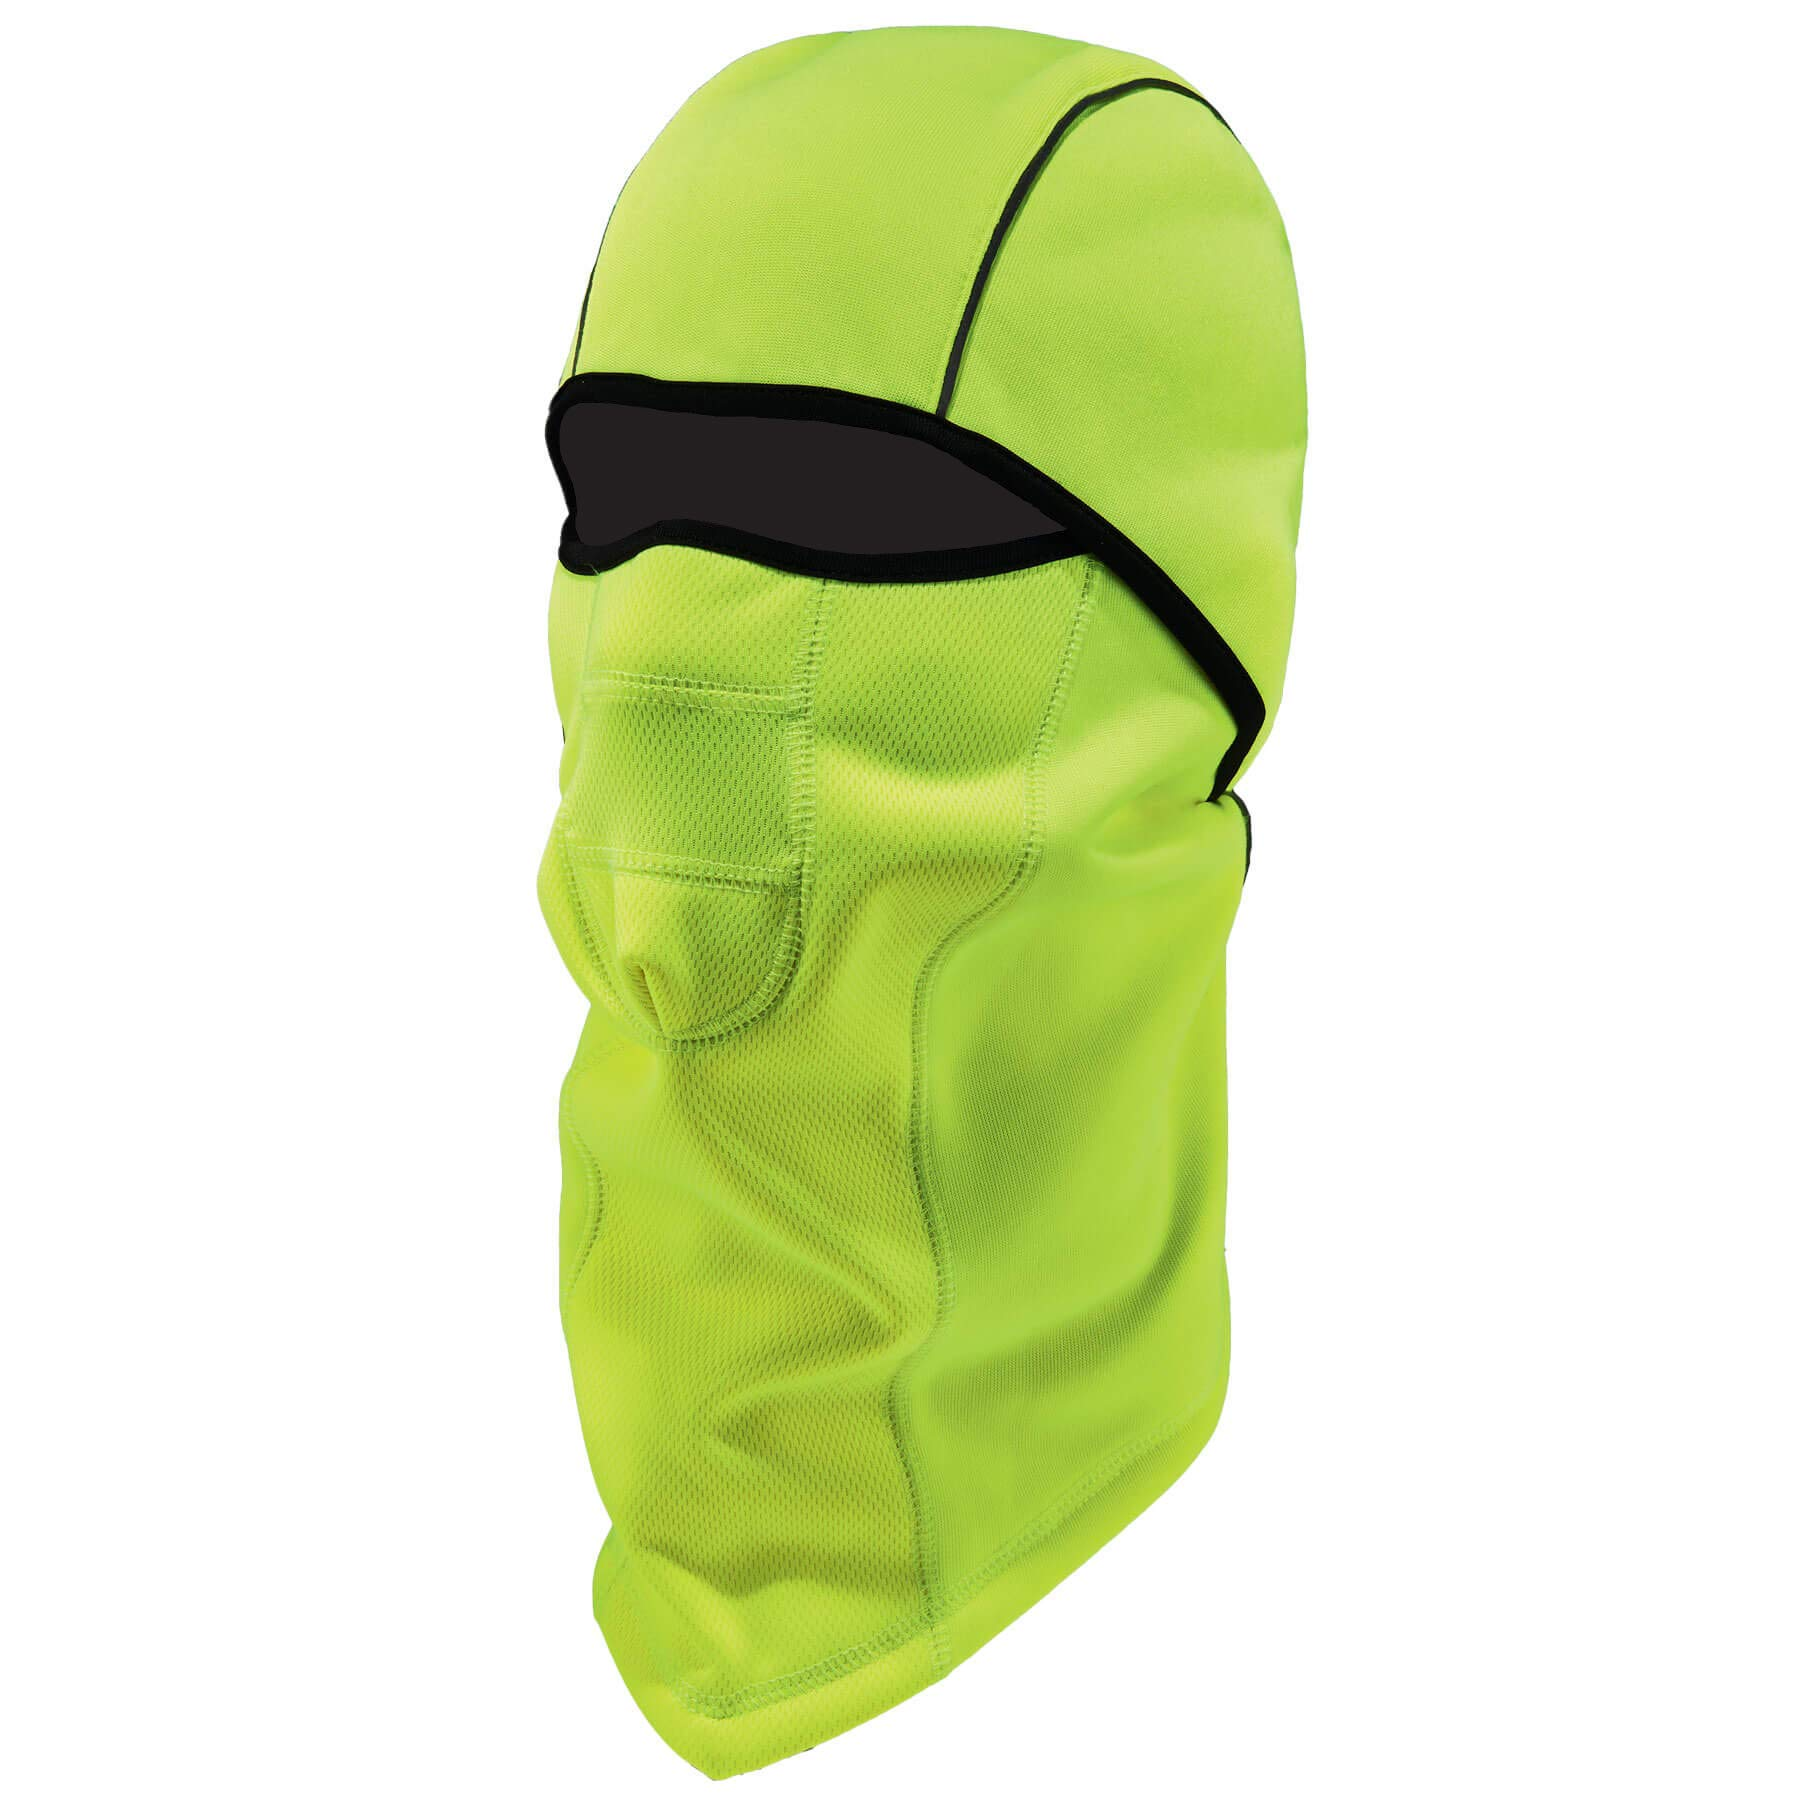 Ergodyne N-Ferno 6823 Winter Ski Mask Balaclava, Wind-Resistant Face Mask, Thermal Fleece, Hi Vis by Ergodyne